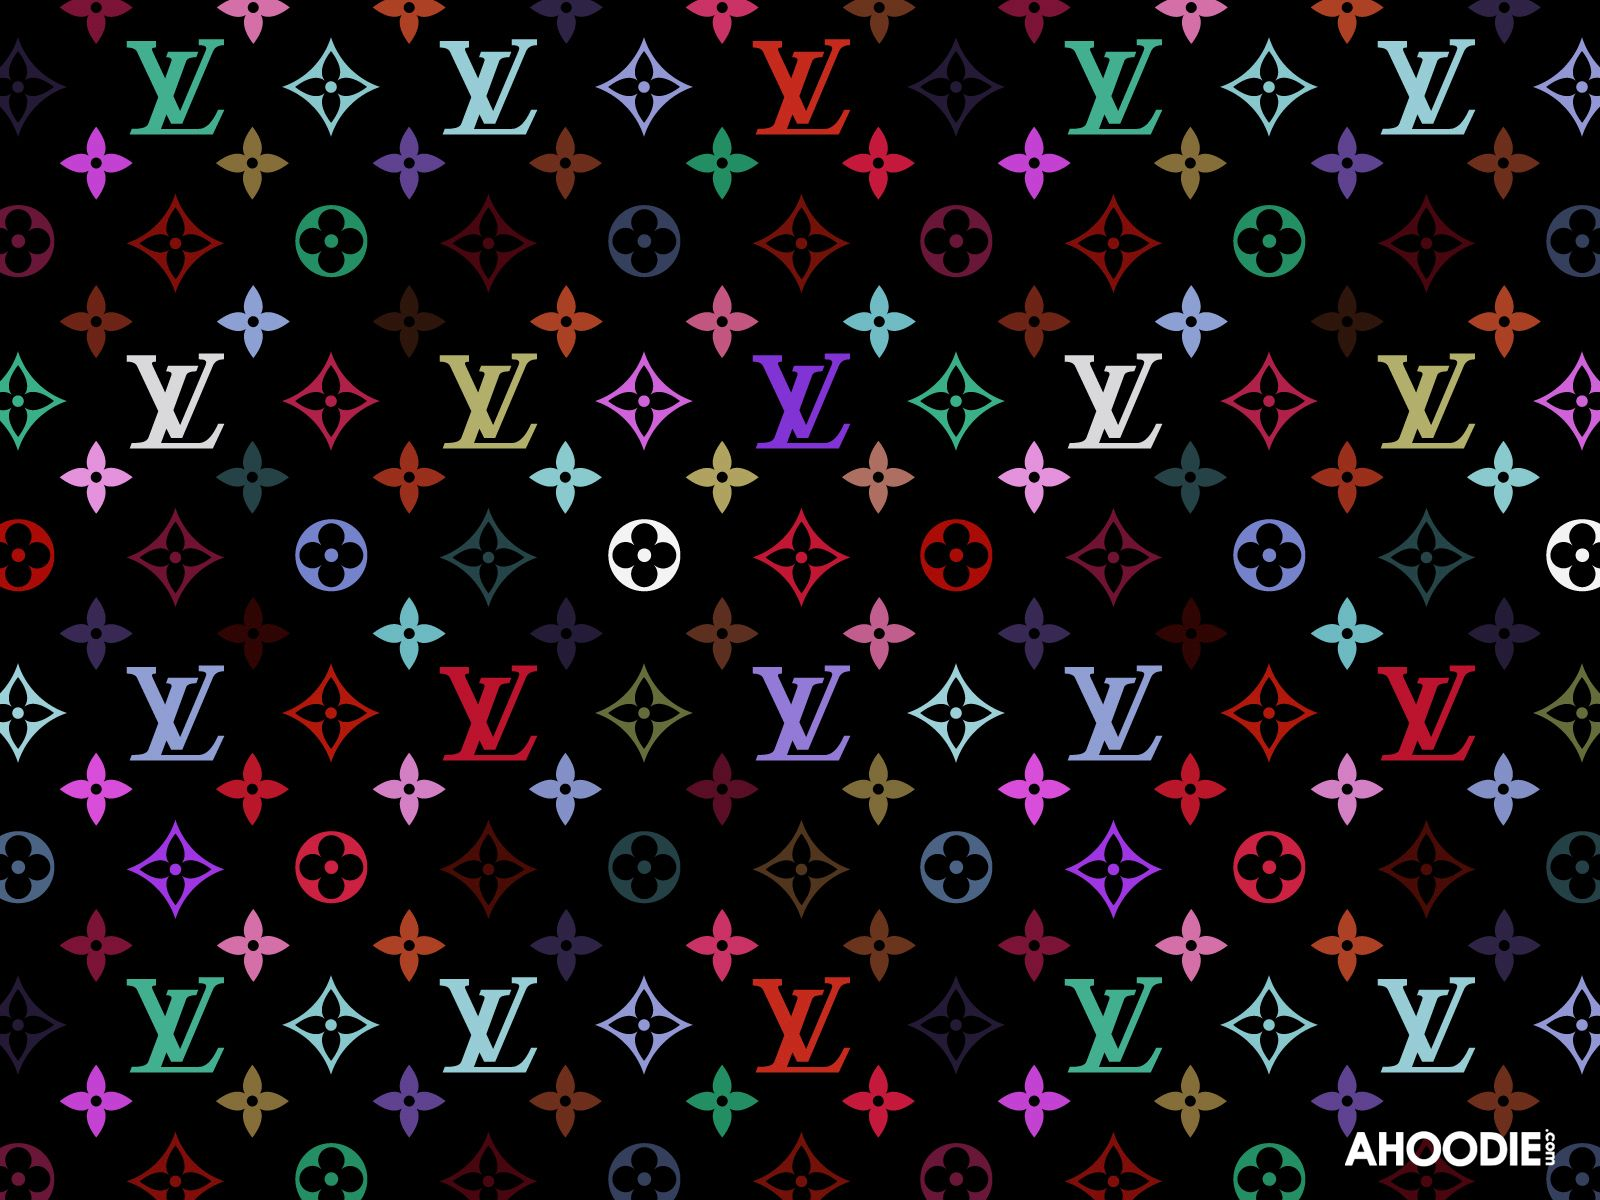 Iphone 7 Wallpaper Size Louis Vuitton Hd Wallpapers Group 61